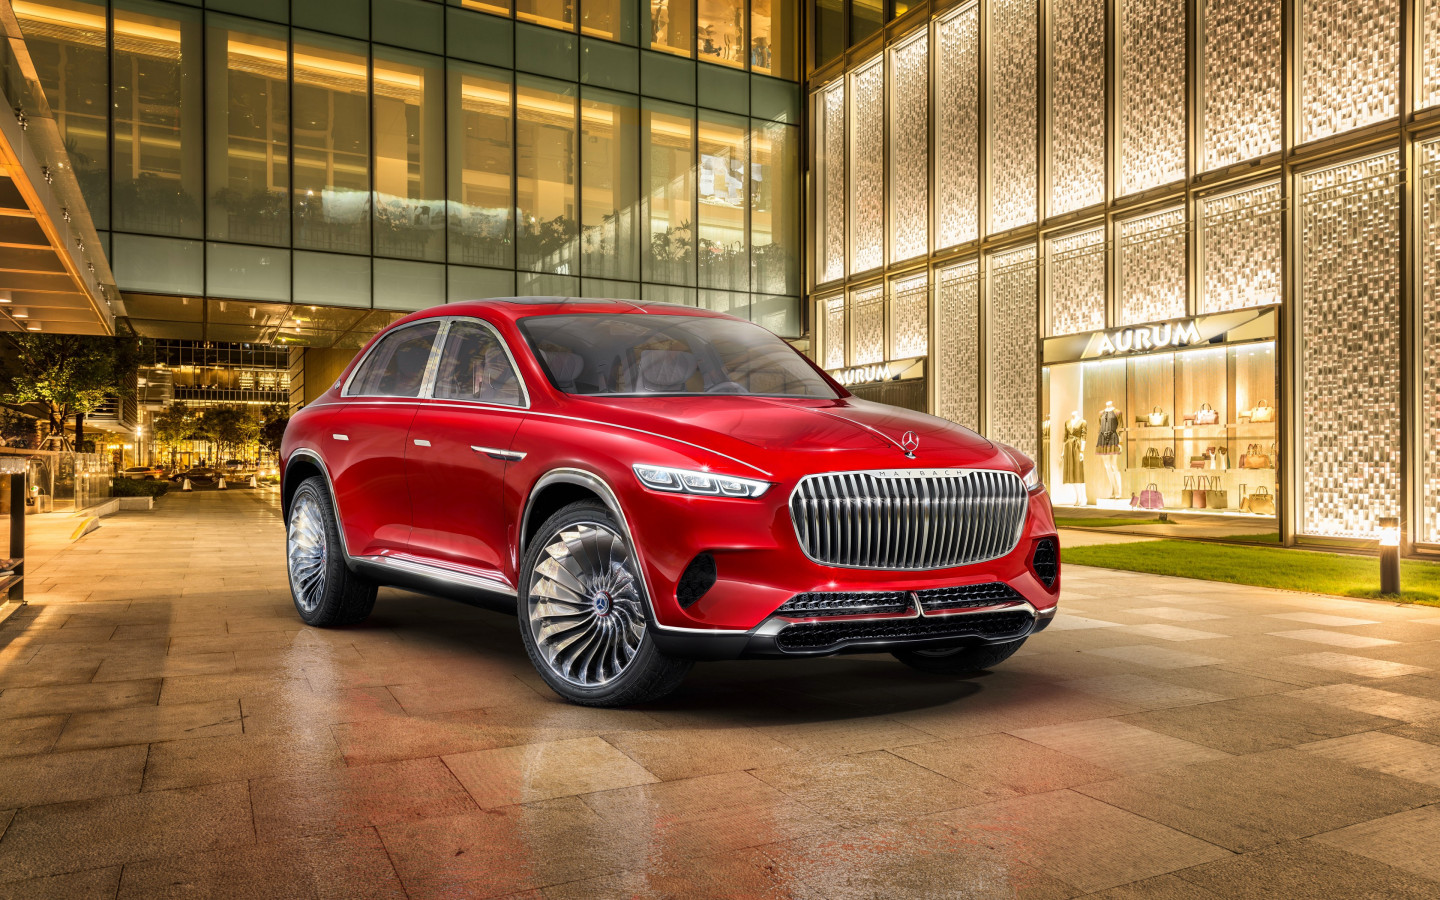 The Vision Mercedes Maybach Ultimate Luxury | 1440x900 wallpaper